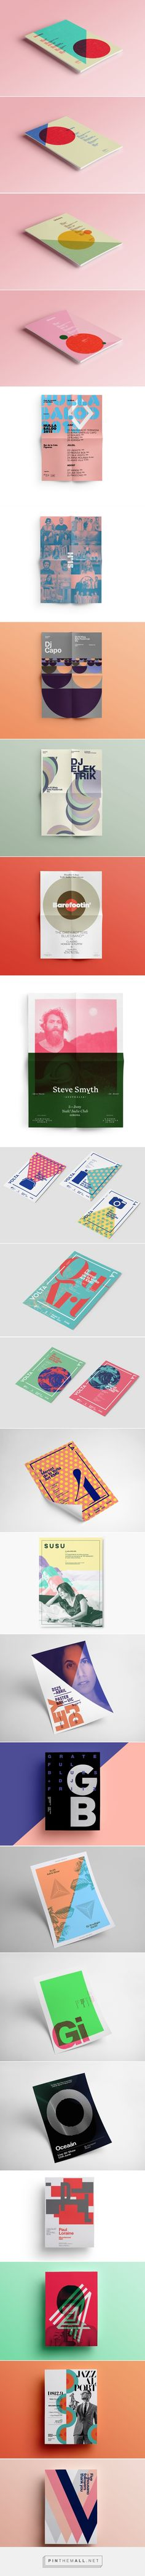 Most awaited, POSTERS VOL 05 Designed by Quim Marin